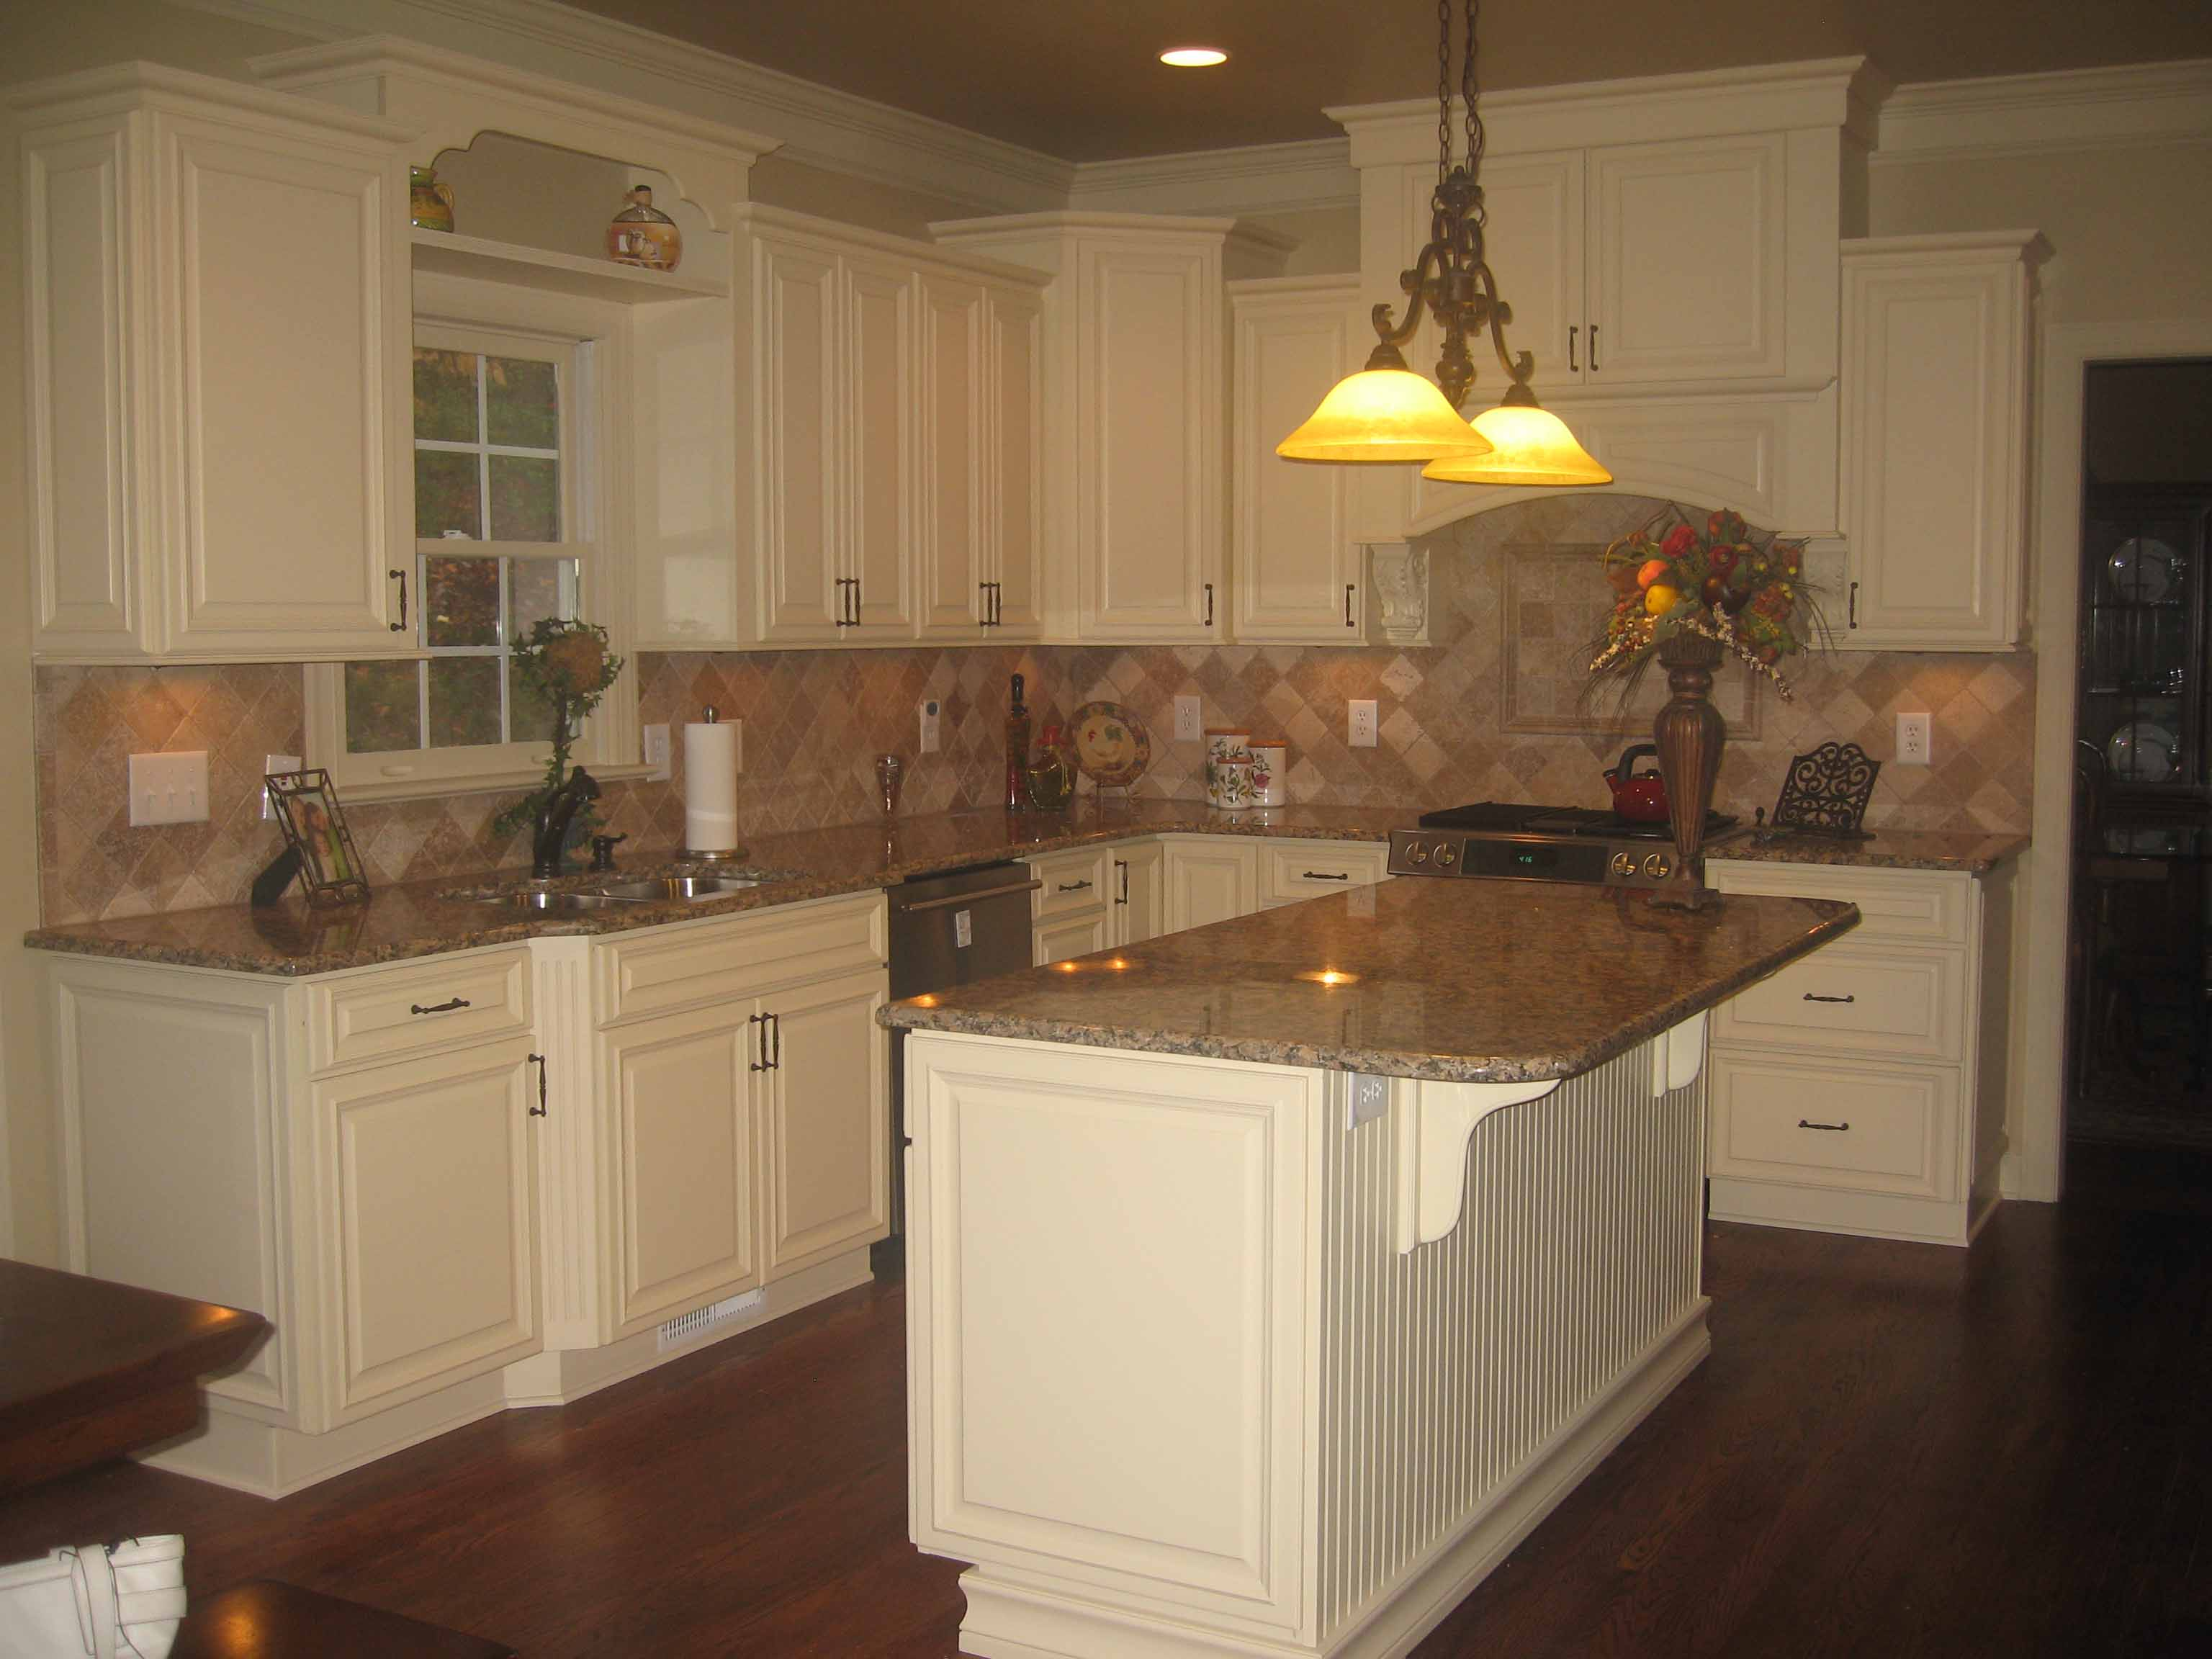 Online Cabinets Direct RTA Kitchen Cabinet Customer Reviews